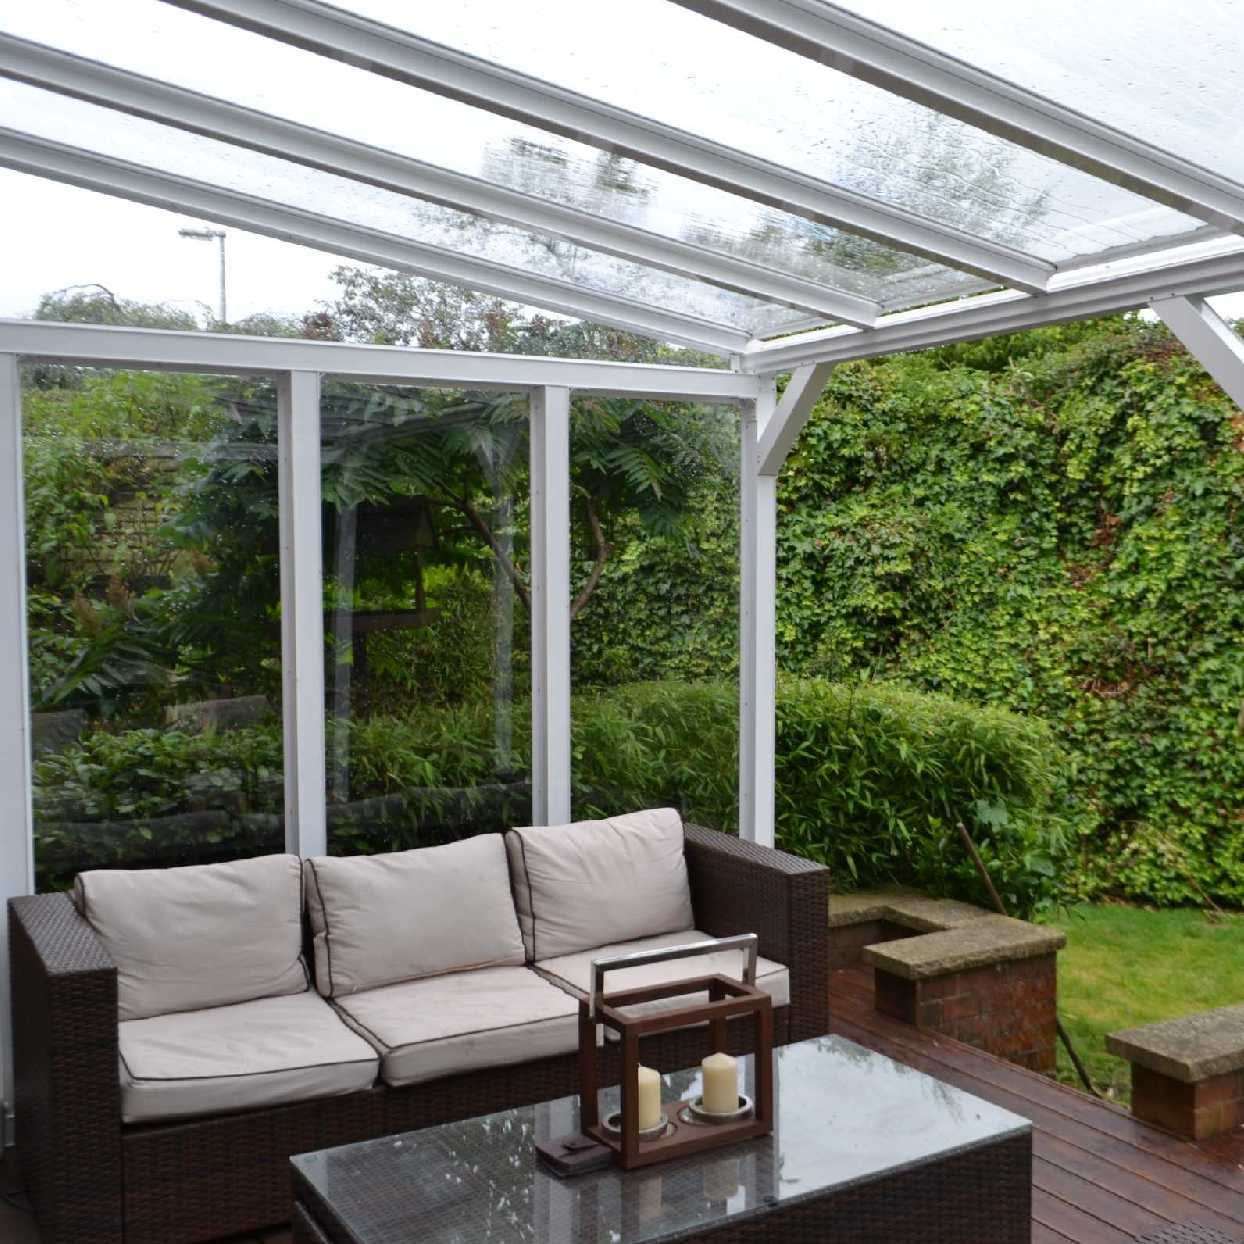 Great selection of Omega Smart White Lean-To Canopy with 16mm Polycarbonate Glazing - 5.6m (W) x 3.5m (P), (3) Supporting Posts